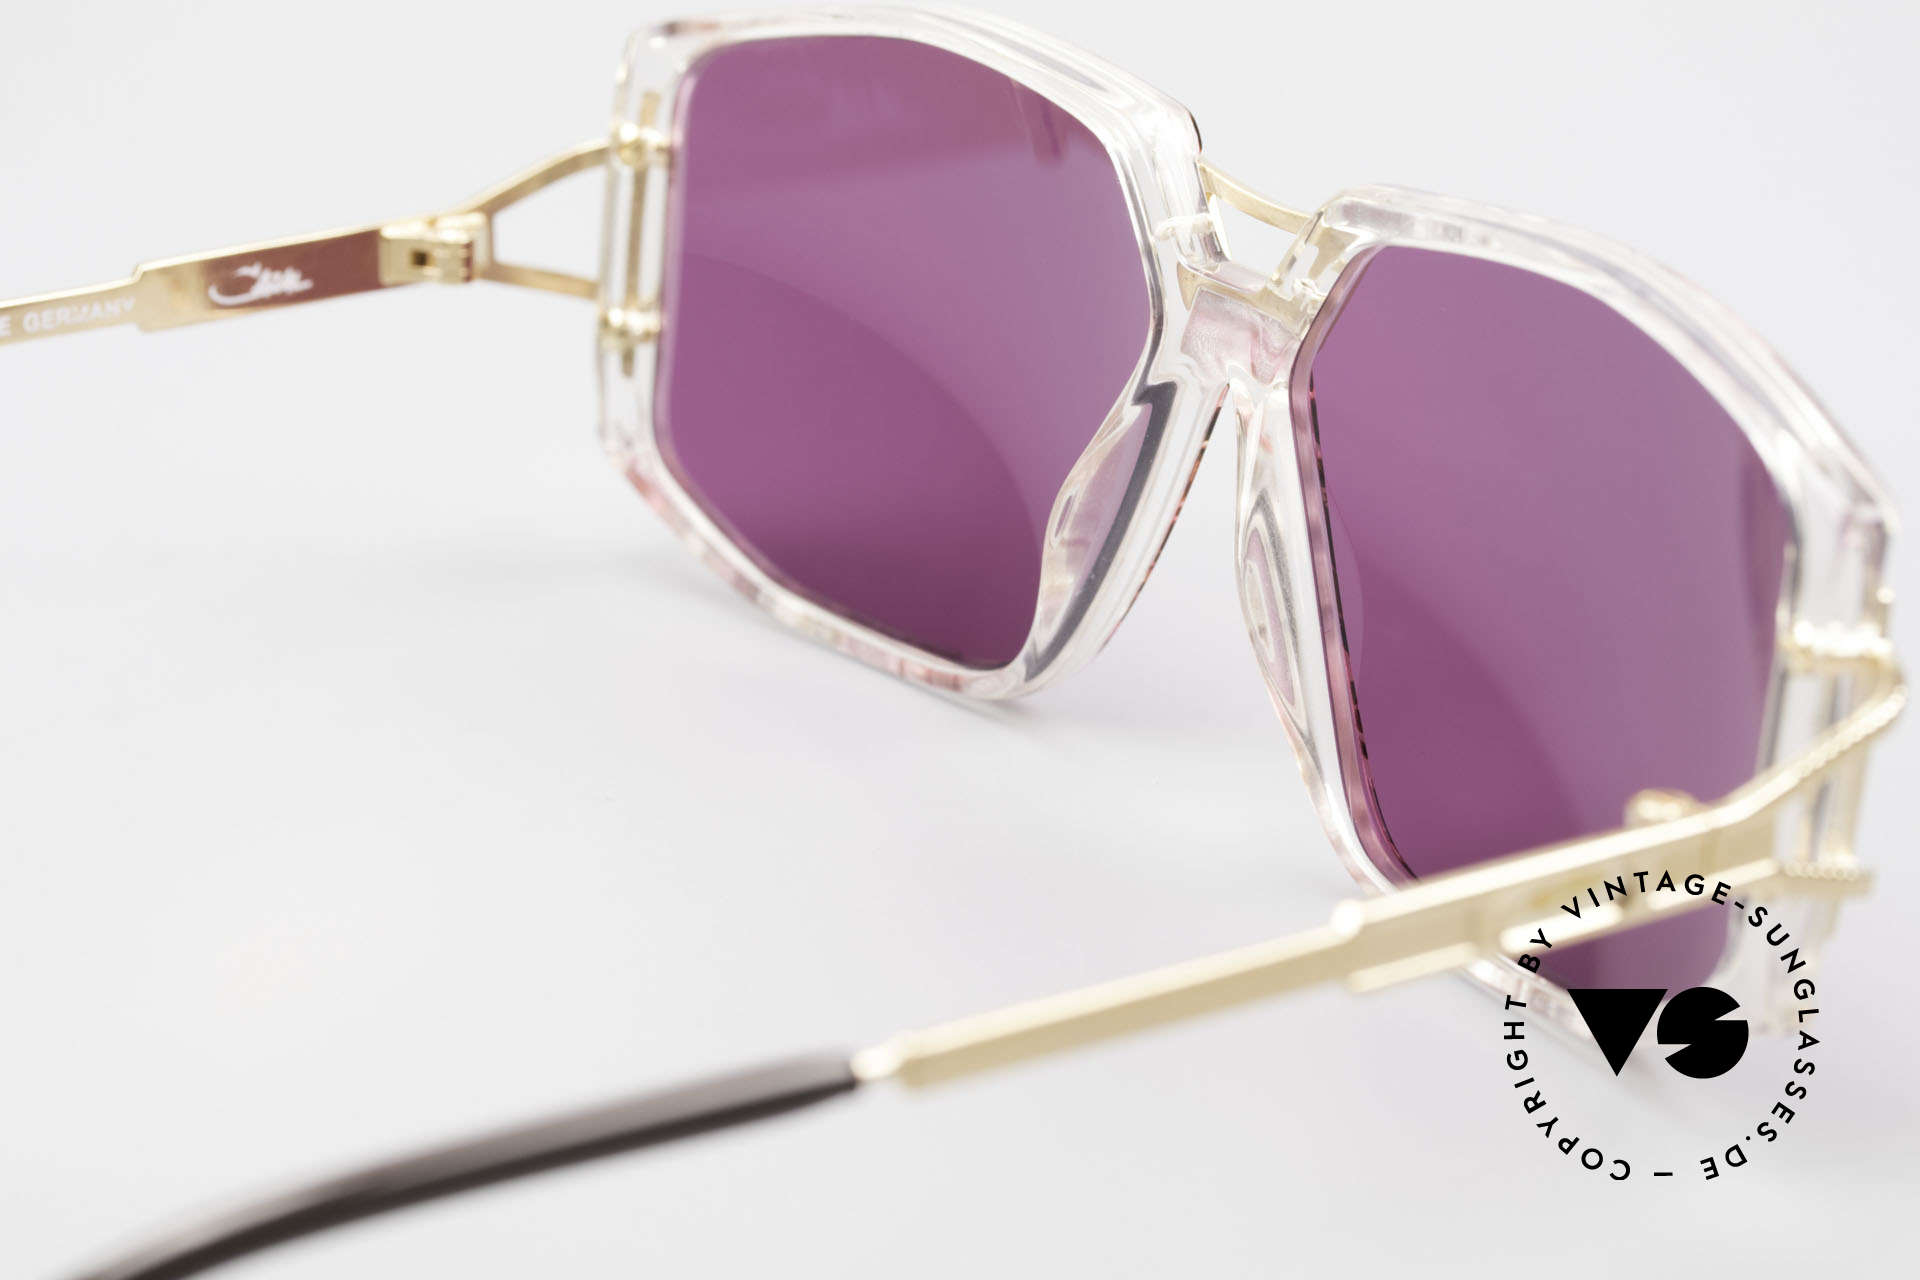 Cazal 362 90's Sunglasses Ladies Cazal, NO RETRO SHADES, but a unique 25 years old original, Made for Women